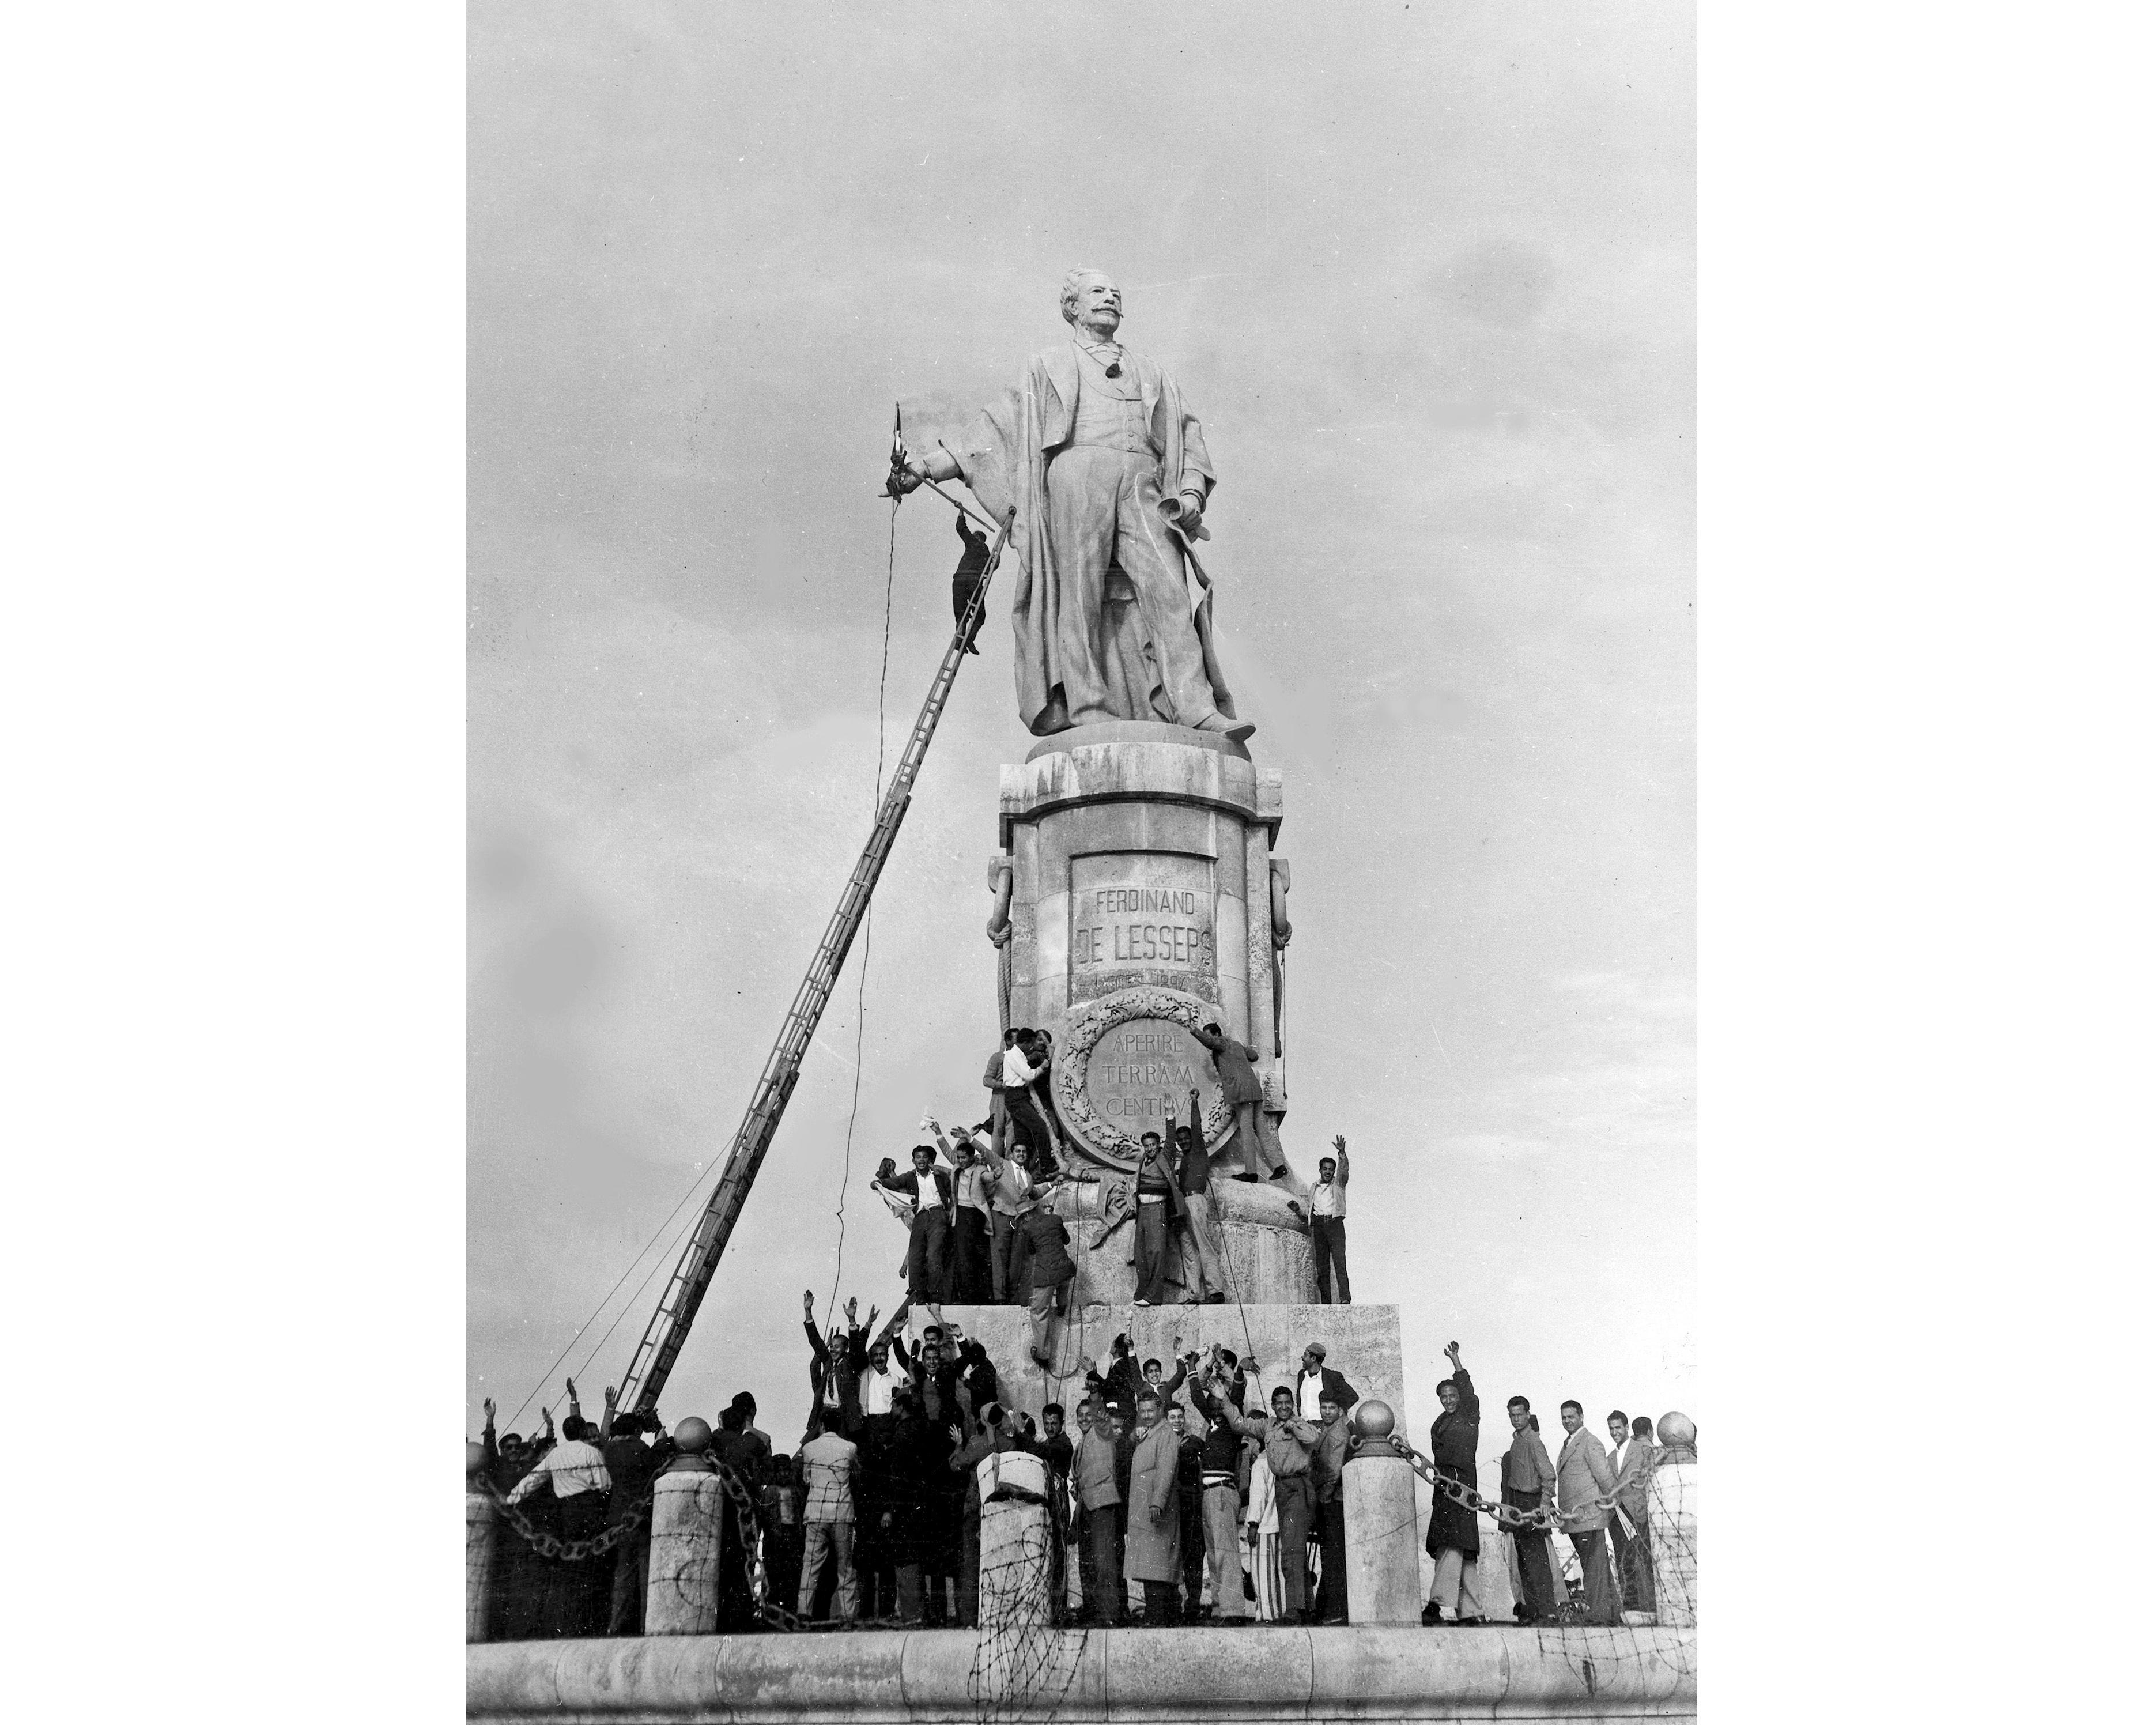 """FILE - In this Dec. 24, 1956 file photo, Egyptian civilians climb on the statue of Ferdinand de Lesseps, the French diplomat who was behind the construction of Egypt's Suez Canal, in Port Said, prior to blowing it up. A proposal to bring back the statue has stirred controversy in Egypt with many saying it would be a salute to colonial times and a """"humiliation"""" to the memory of tens of thousands of Egyptian laborers who died while digging the waterway. The debate started when a newspaper reported in June 2020 that local authorities in the Mediterranean province of Port Said were thinking of returning the statue to where it once stood at the northern entrance of the canal. (AP Photo, File)"""